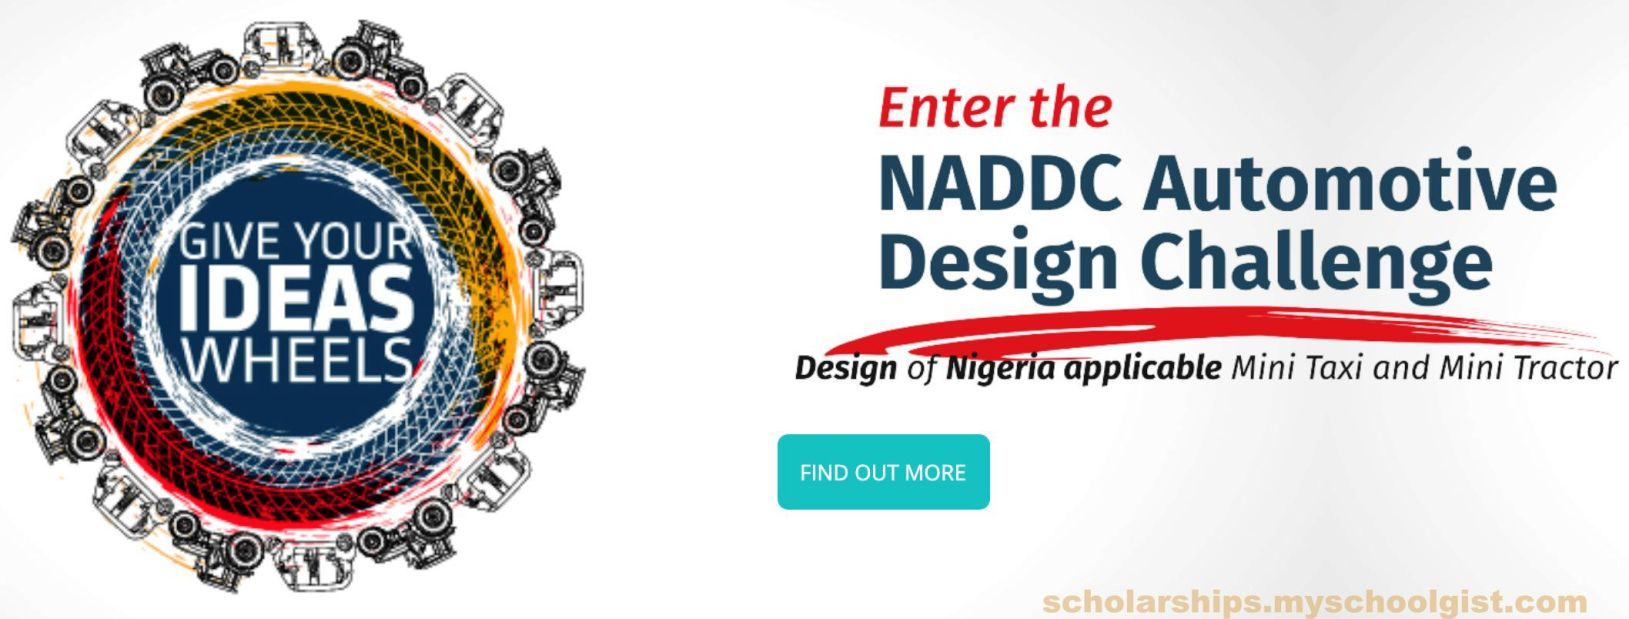 NADDC excites young Nigerians with first Automotive Design Challenge